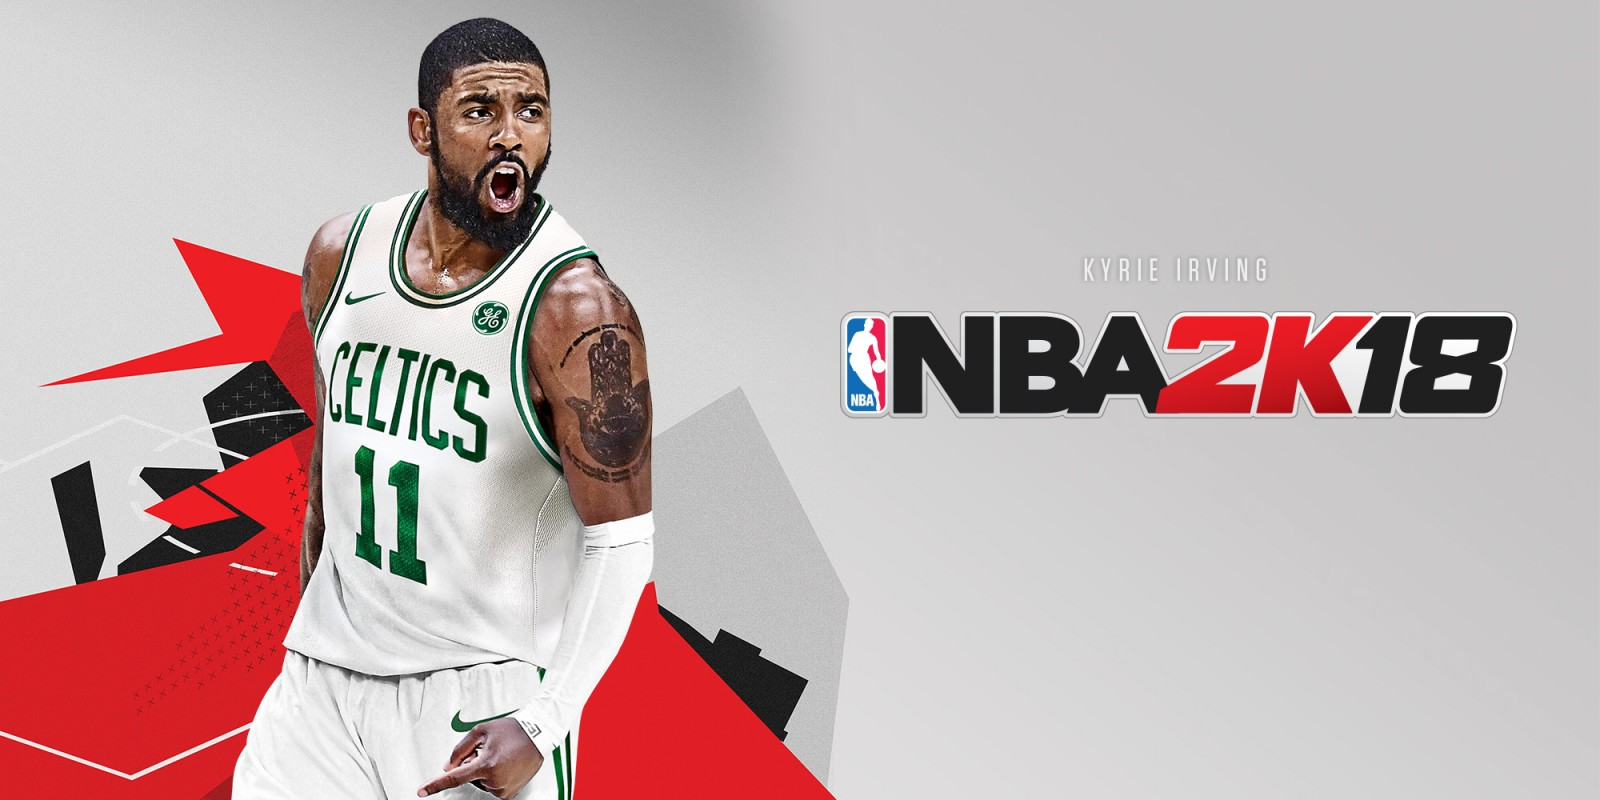 NBA 2K18 for iOS is now available for $6 on the App Store